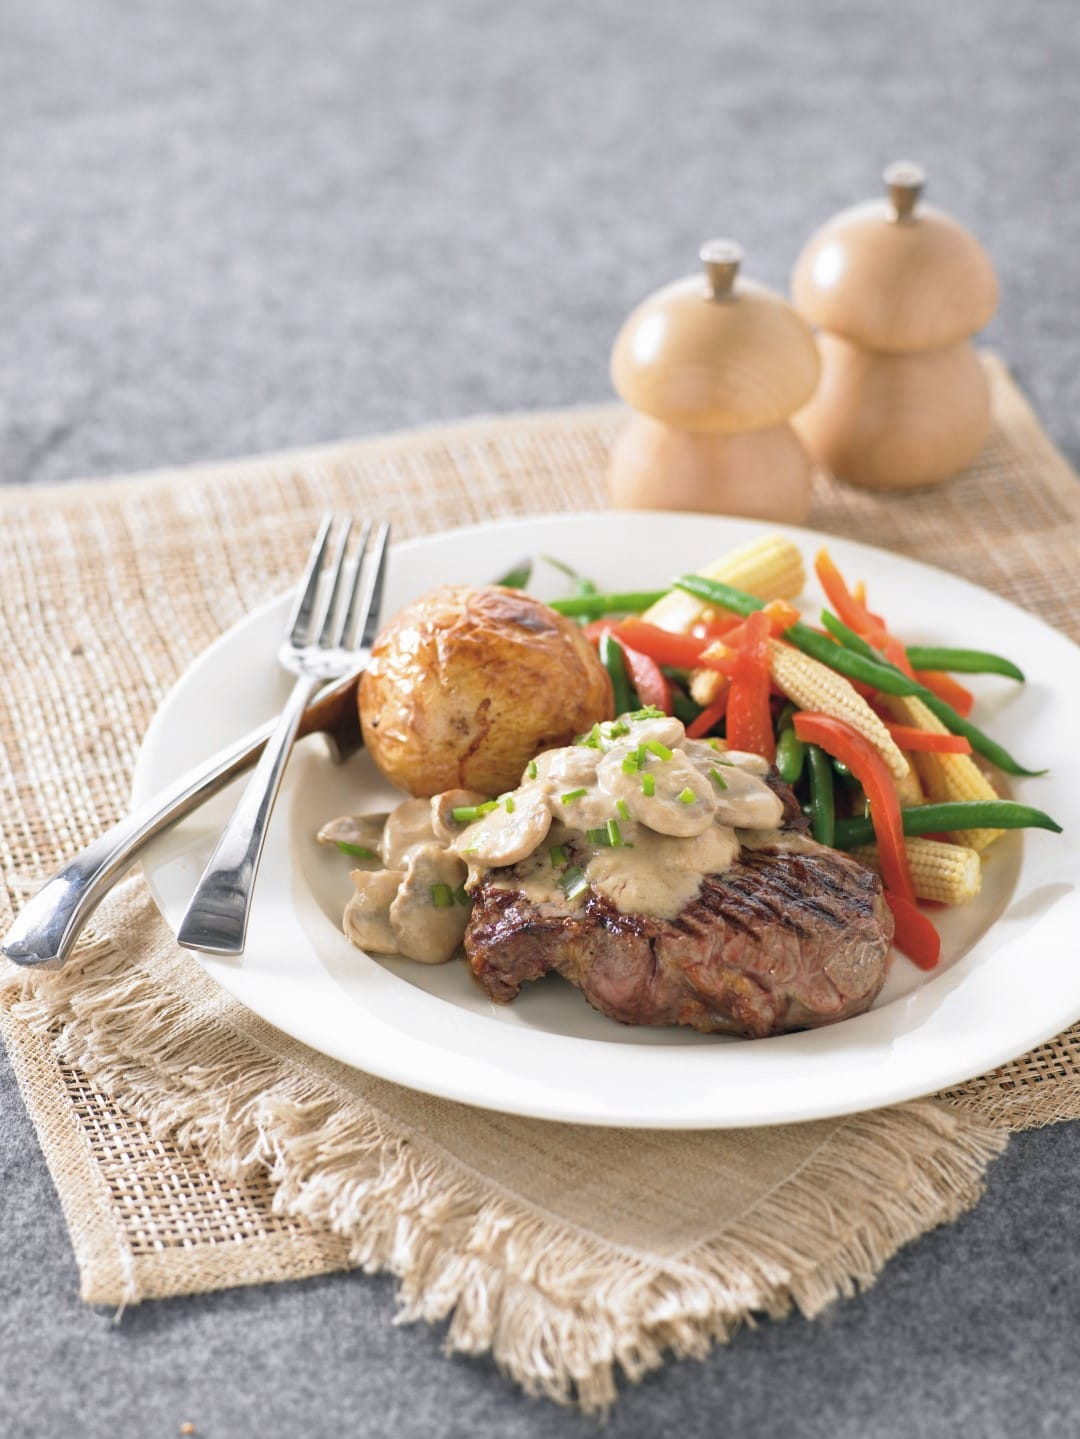 Steak With Mushroom Sauce Healthy Food Guide